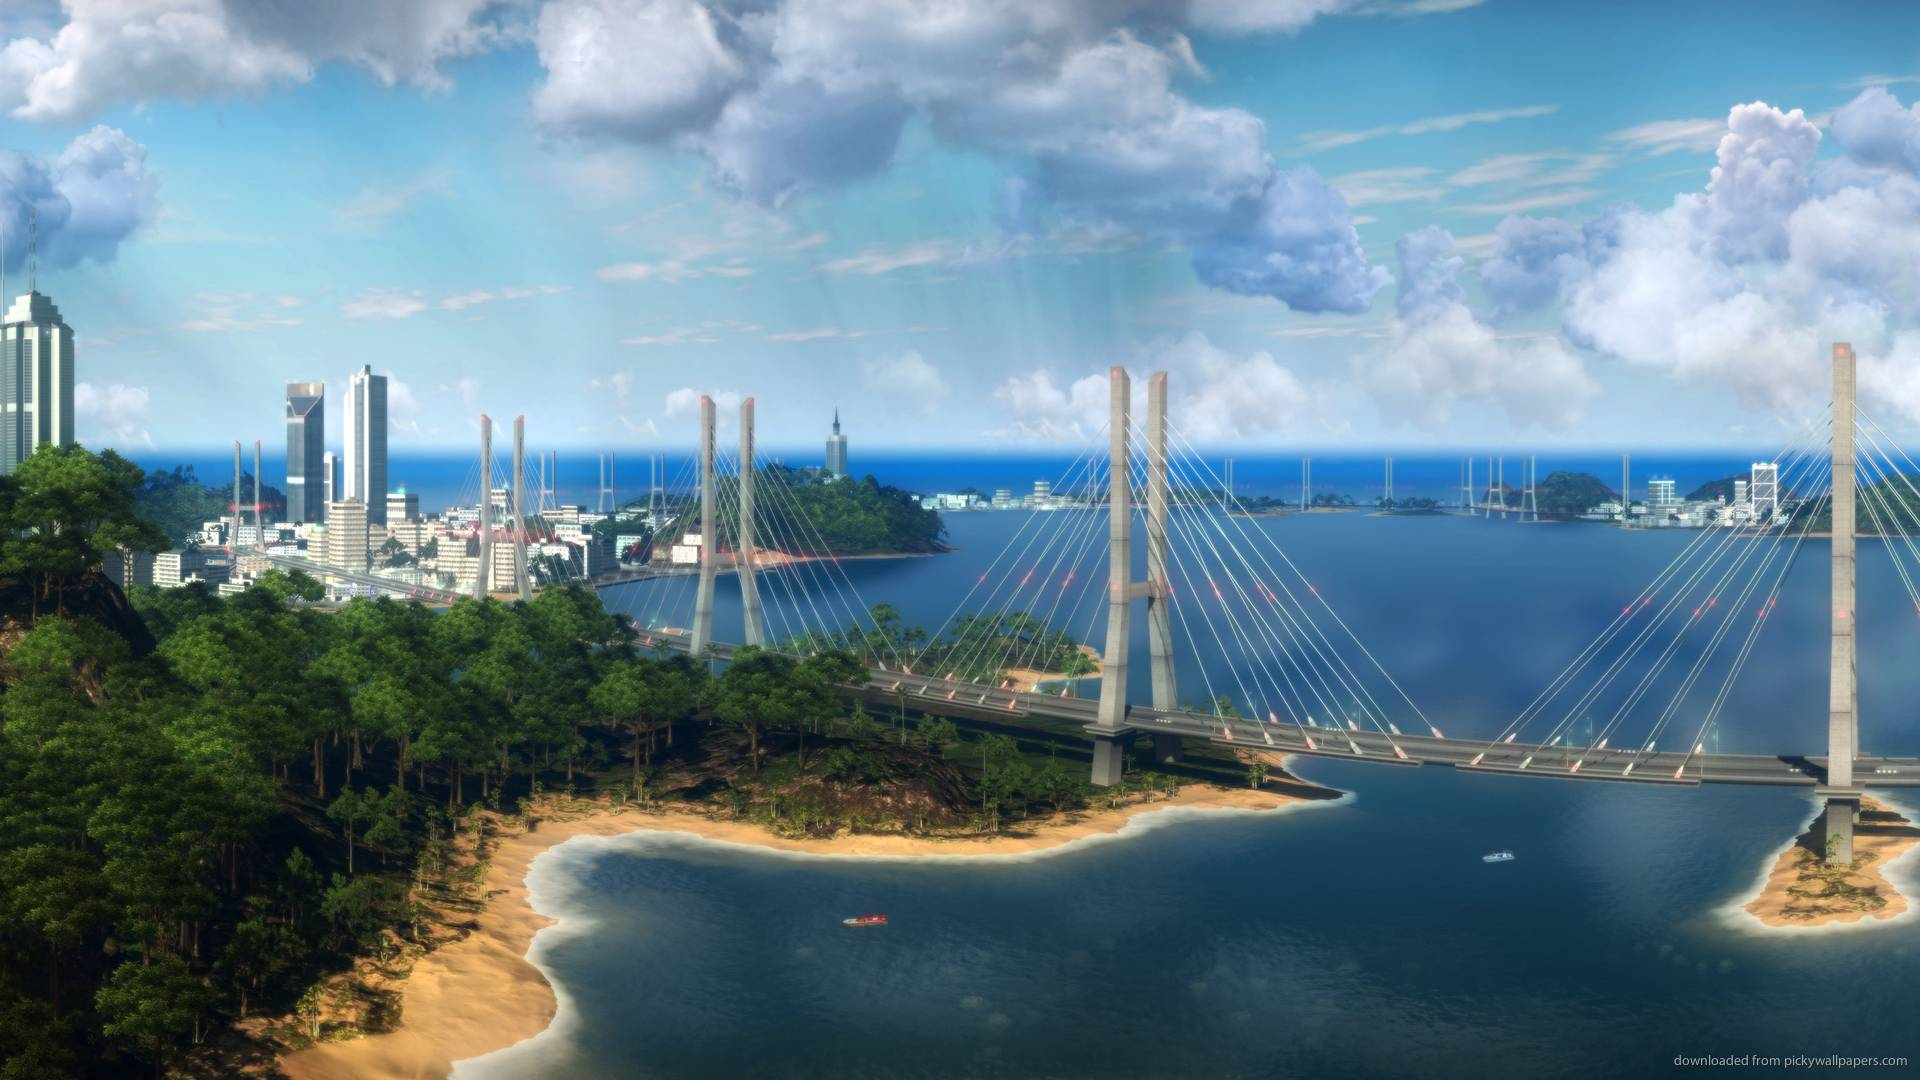 Download 1920x1080 Just Cause 2 Long Bridge Wallpapers